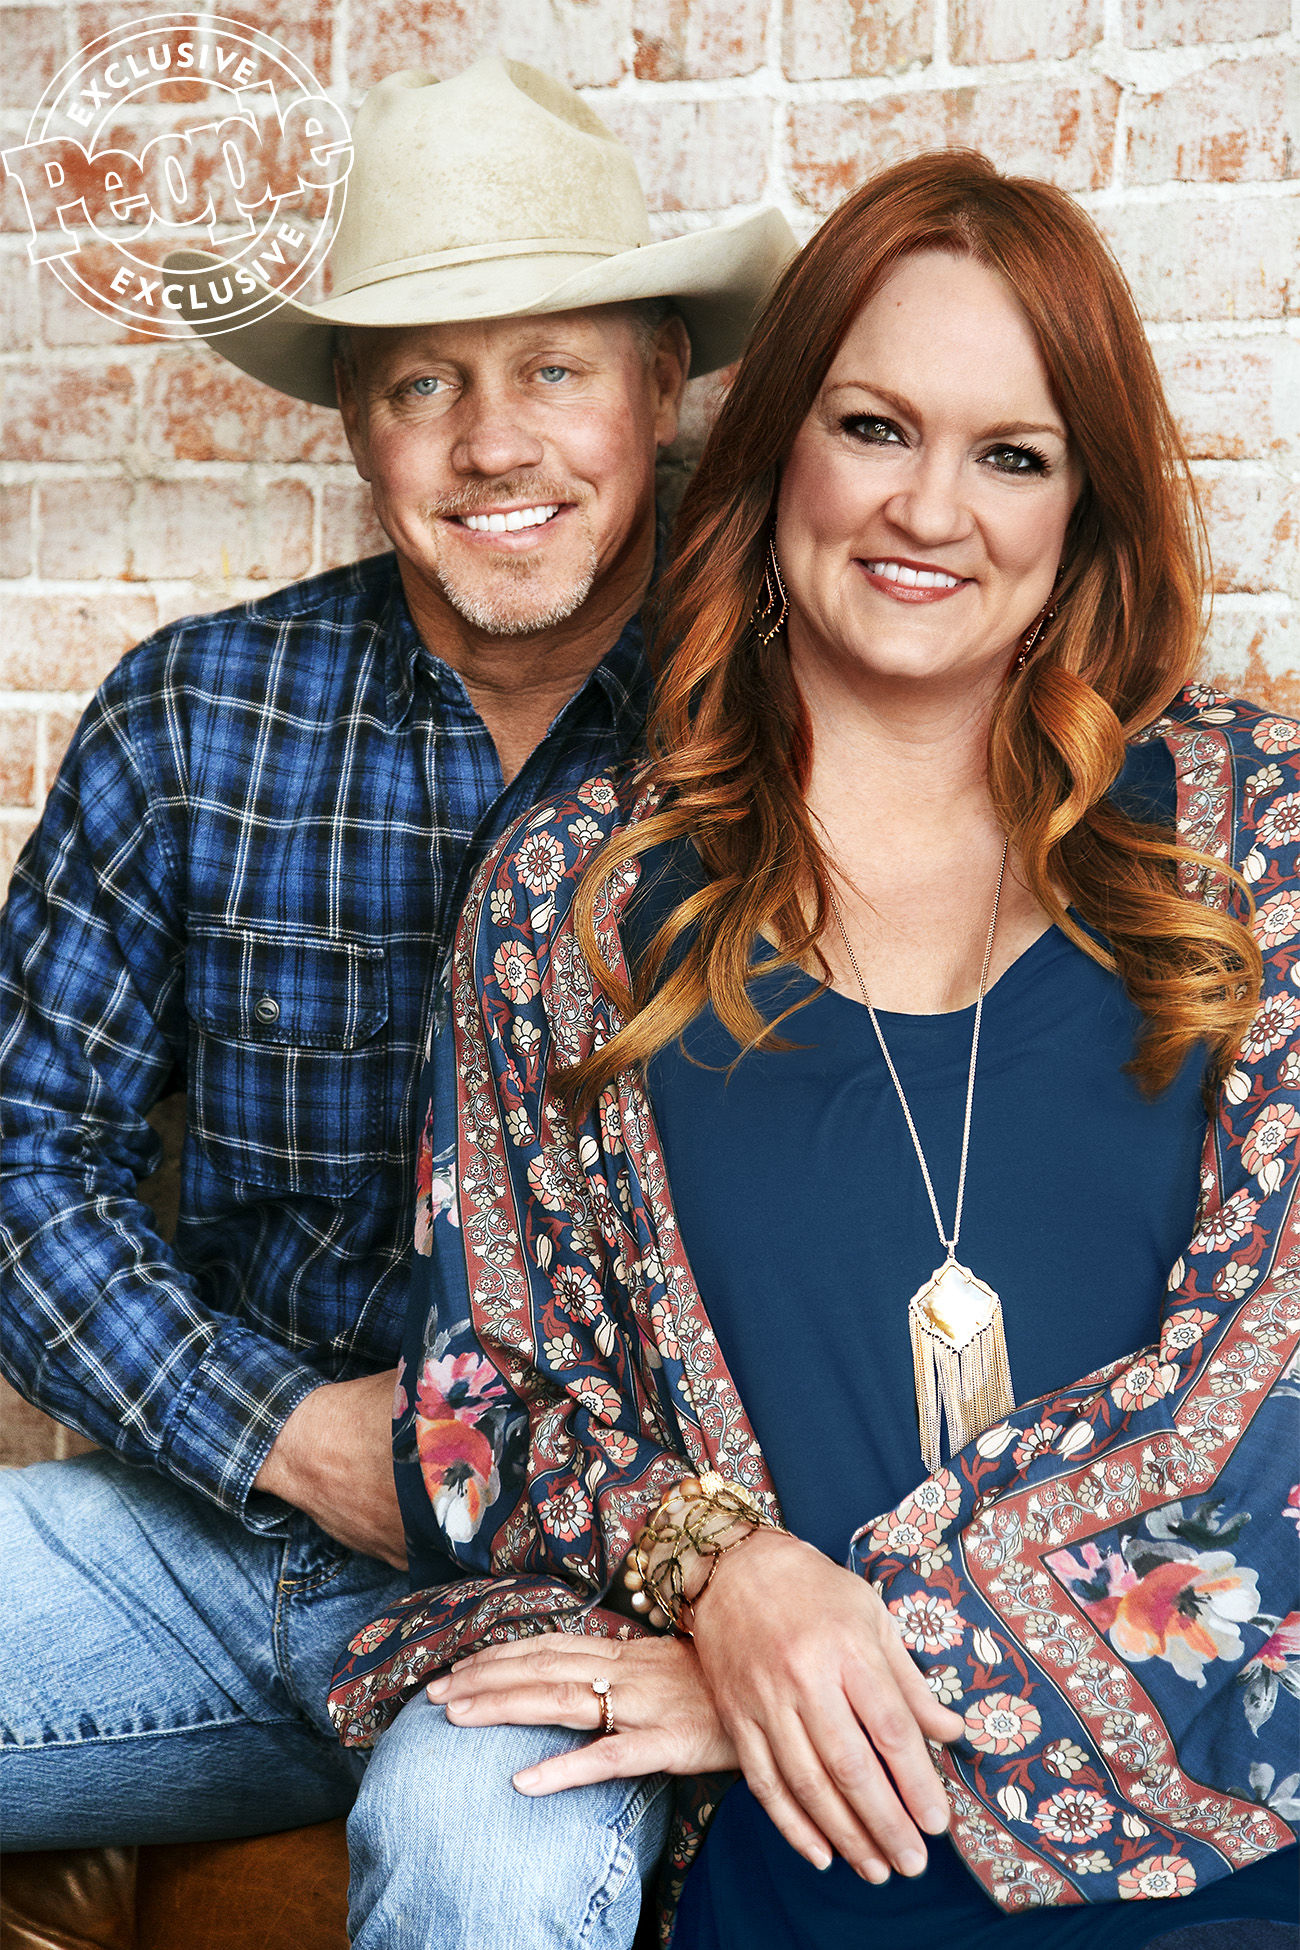 Ree Drummond Shares the Sweet Nightly Ritual That's Kept Her Marriage Strong After 21 Years